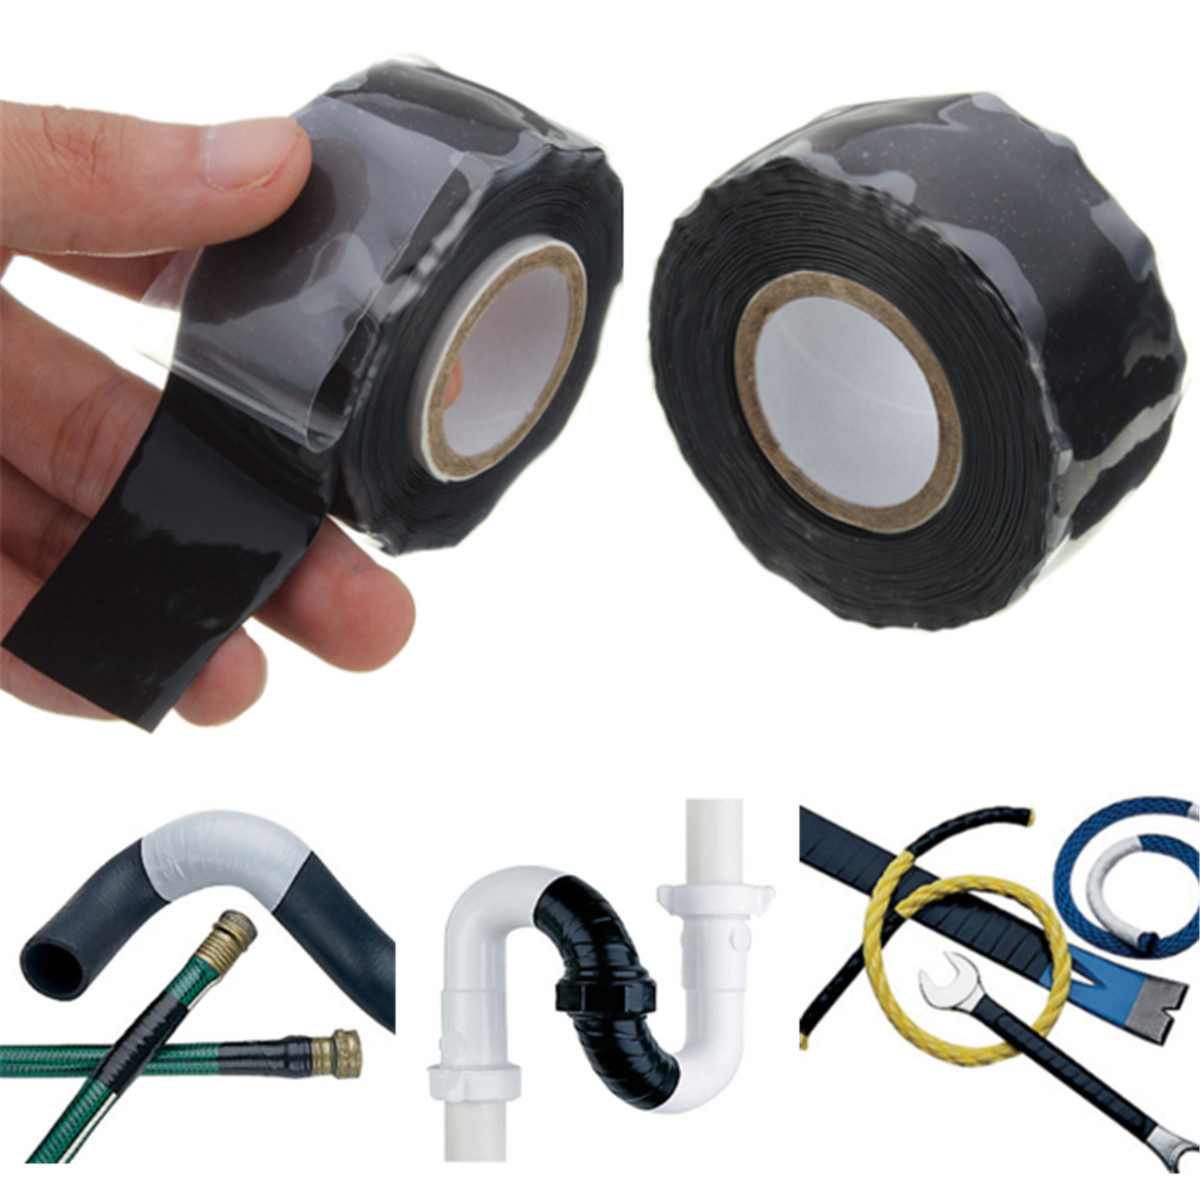 Black Rubber Silicone Repair Waterproof Seal Repair Tape Rescue Self Fusing Wire